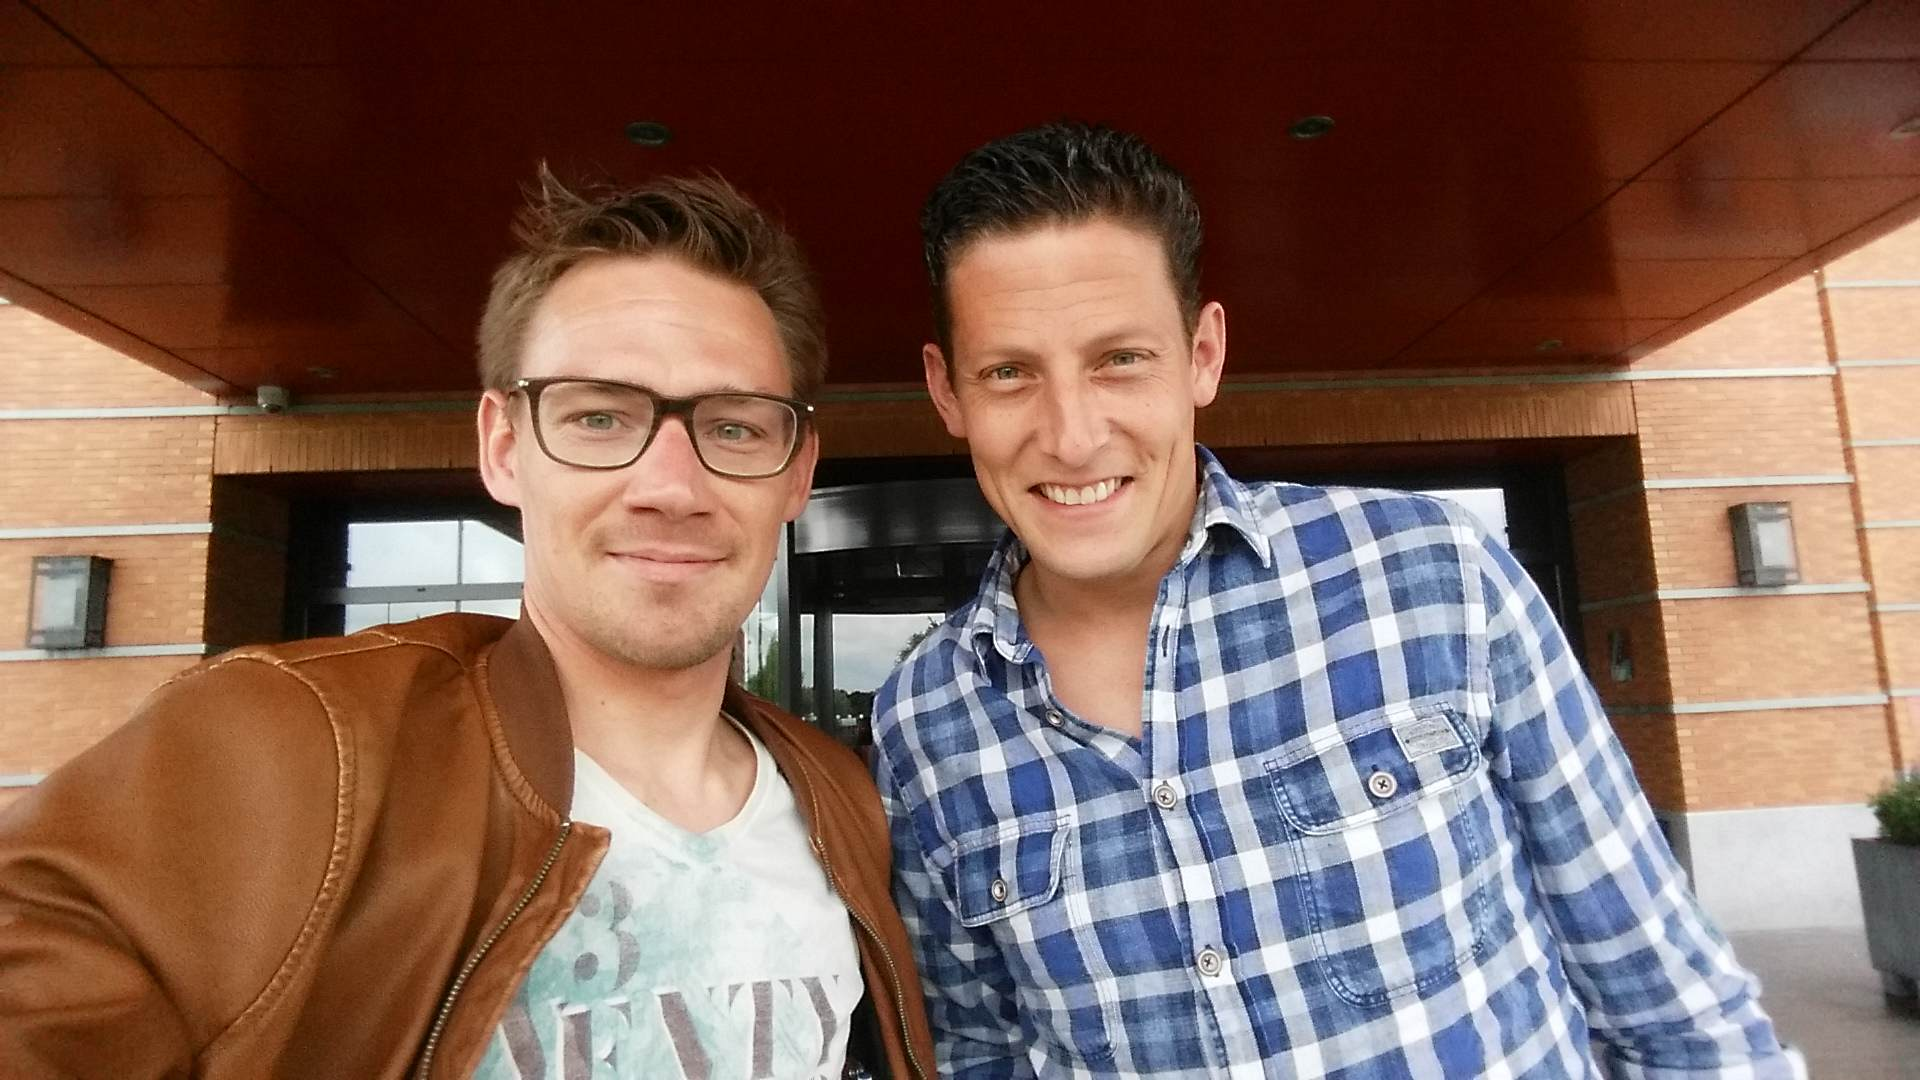 Jeroen Manschot (right) and me